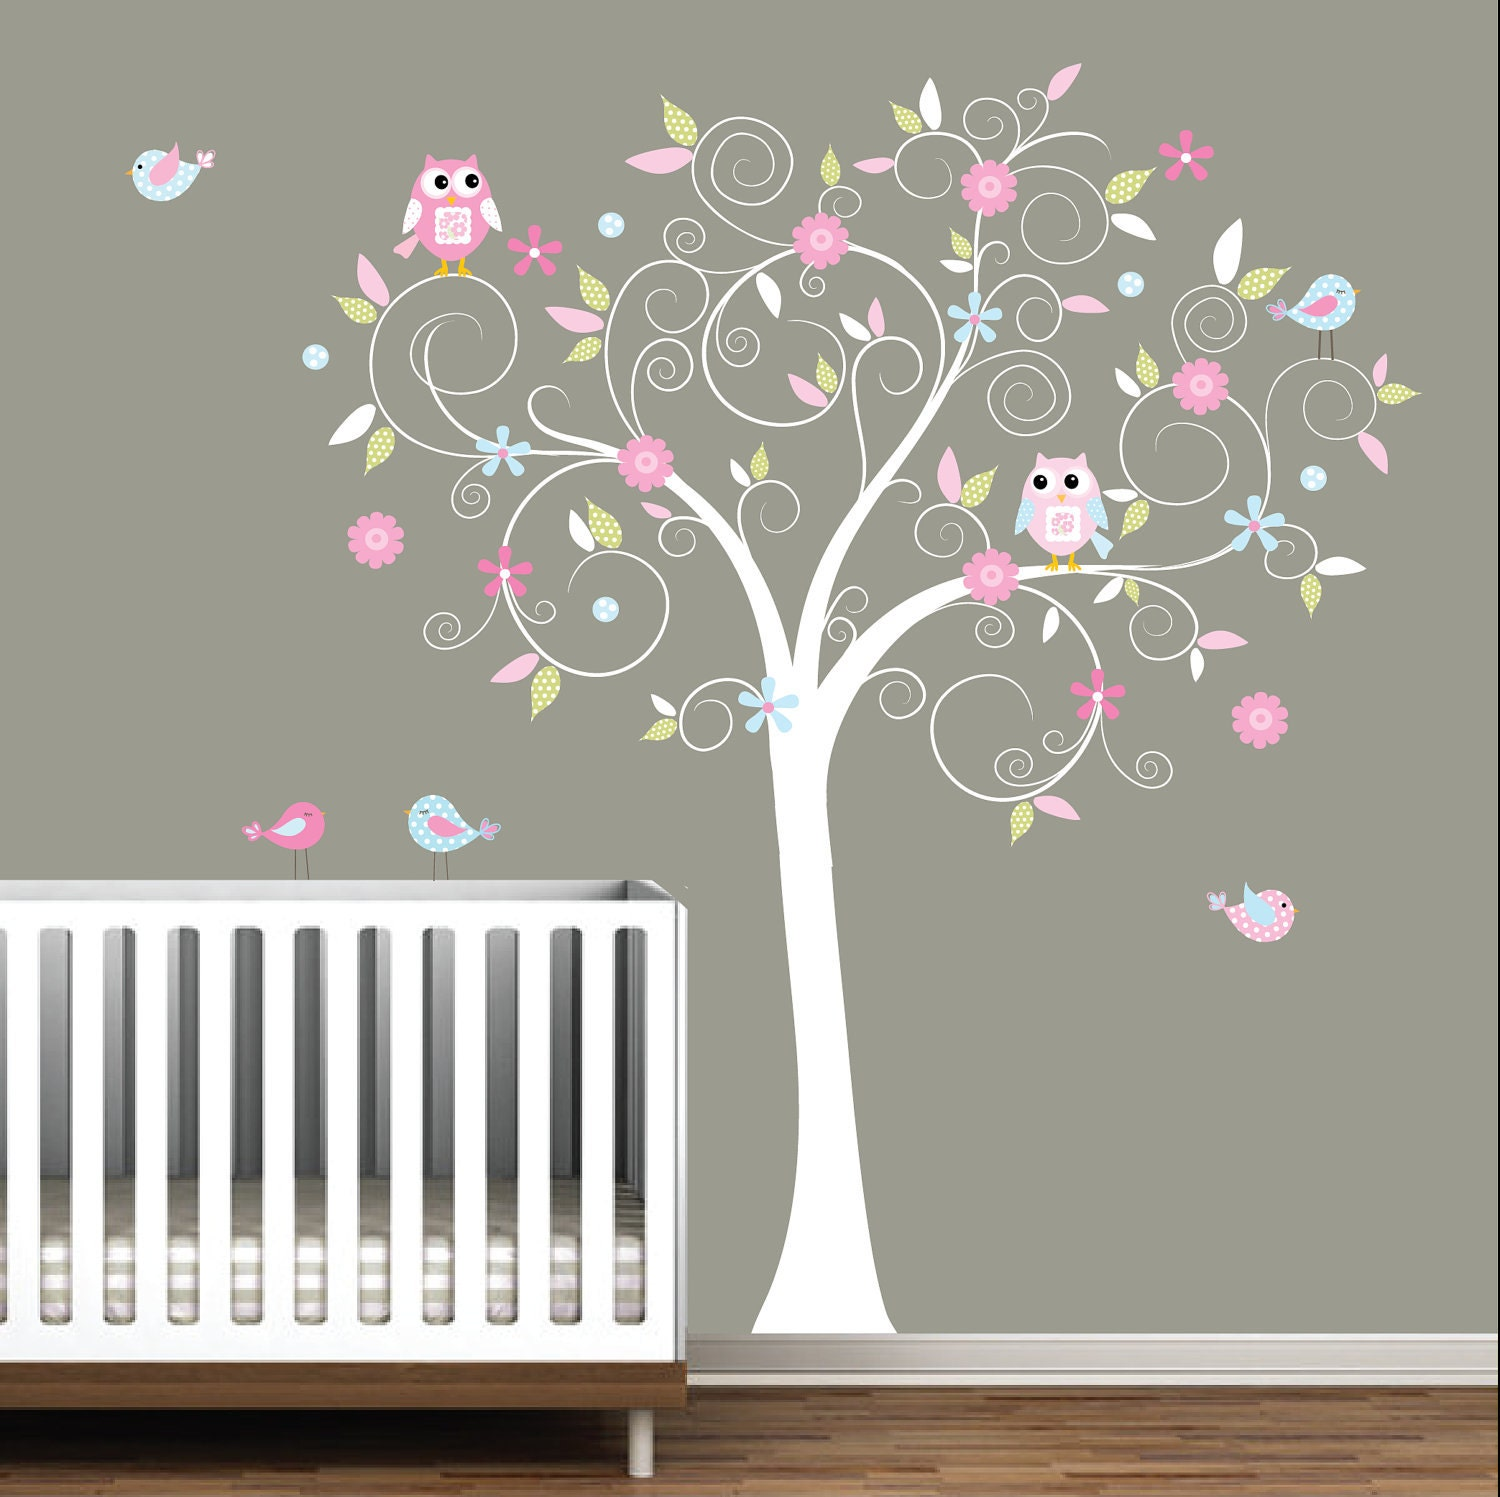 Decal stickers vinyl wall decals nursery tree e17 for Baby nursery wall decoration